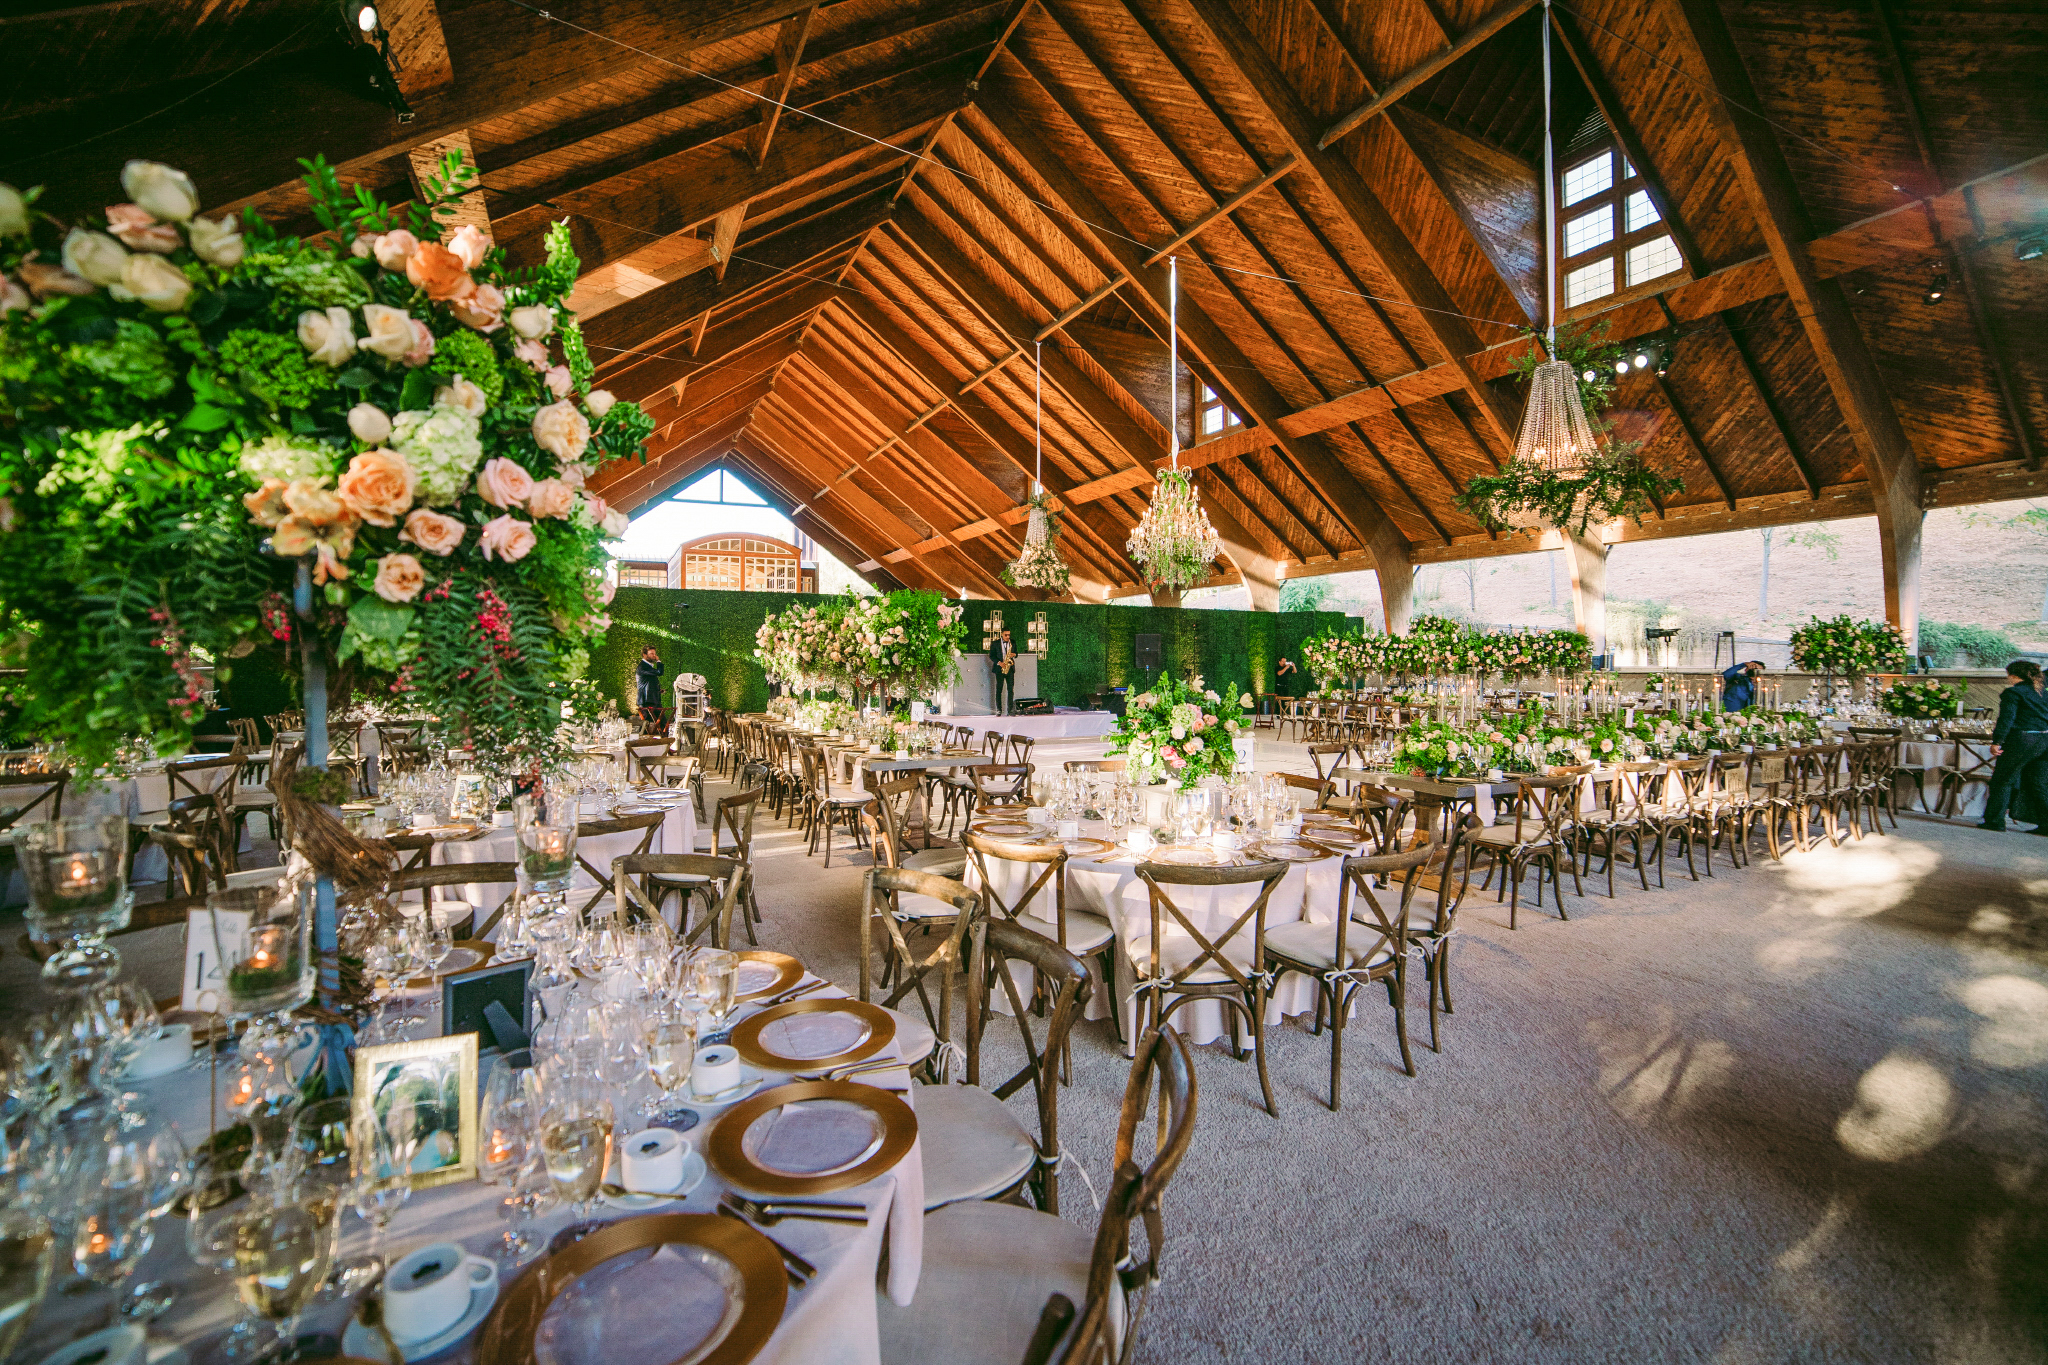 san diego wedding   photographer | view of dining area with several lighting fixtures decorated   with flowers